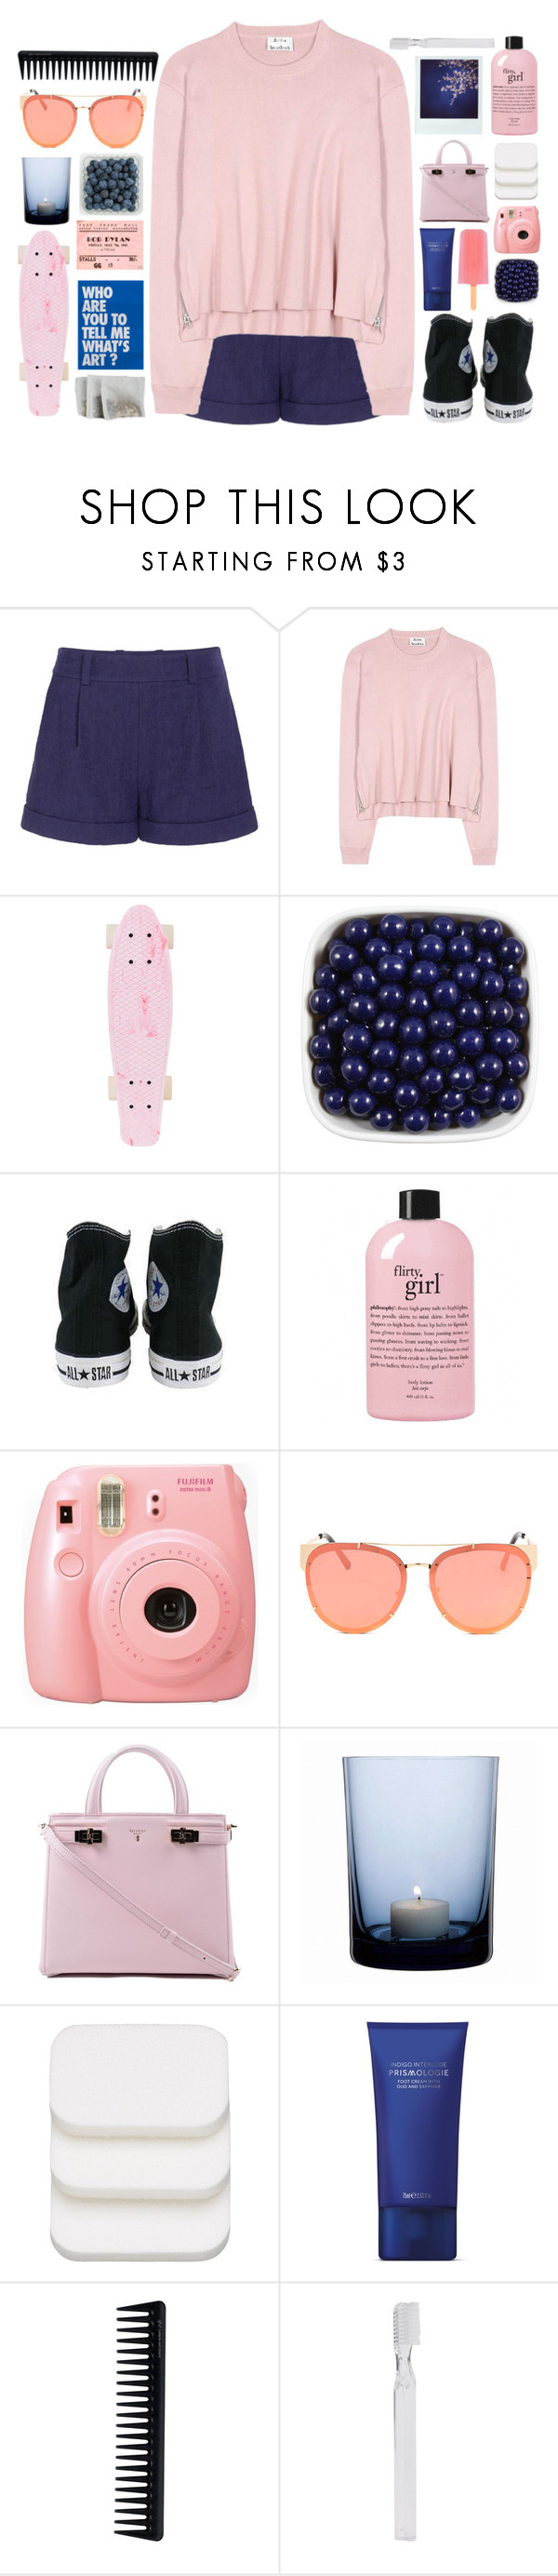 """""""Just gonna keep on daydreaming"""" by cjcstyle ❤ liked on Polyvore featuring Diane Von Furstenberg, Acne Studios, Converse, philosophy, Fujifilm, Serapian, By Nord, COVERGIRL, GHD and Polaroid"""